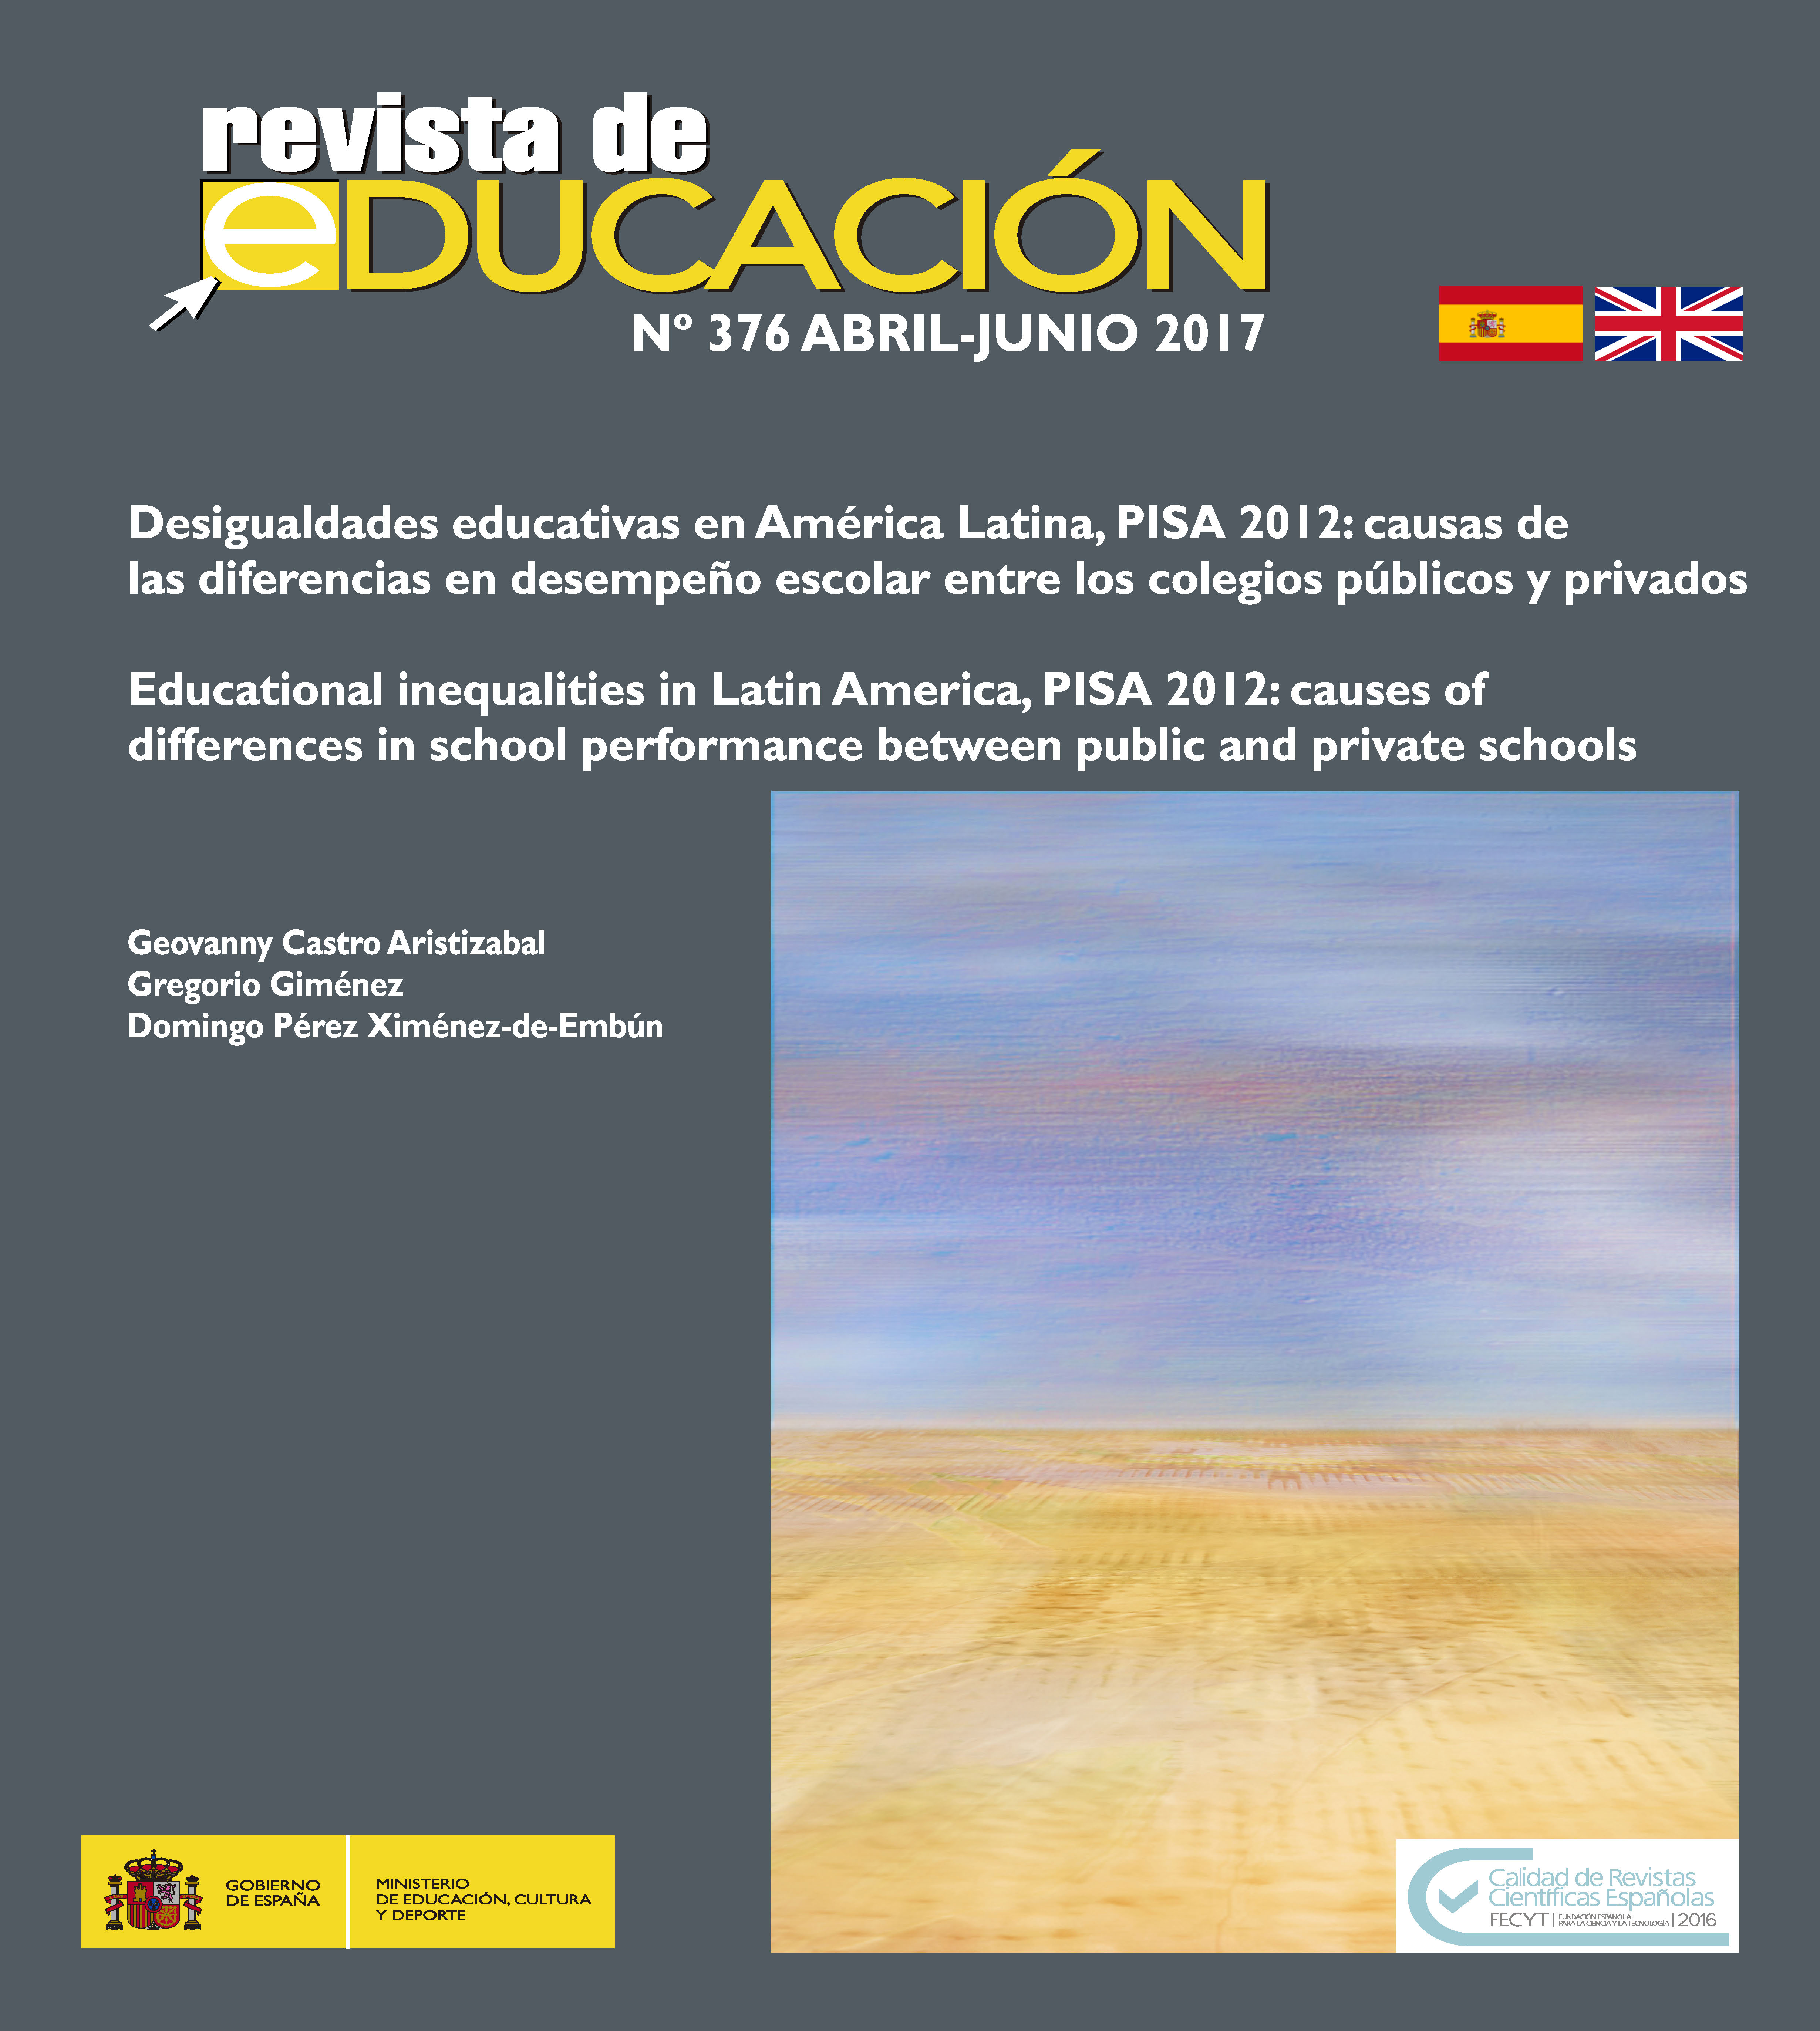 desigualdades-educativas-en-america-latina-pisa-2012-causas-de-las-diferencias-en-desempeno-escolar-entre-los-colegios-publicos-y-privados--educational-inequalities-in-latin-america-pisa-2012-causes-of-differences-in-school-performance-between-public-and-private-schools